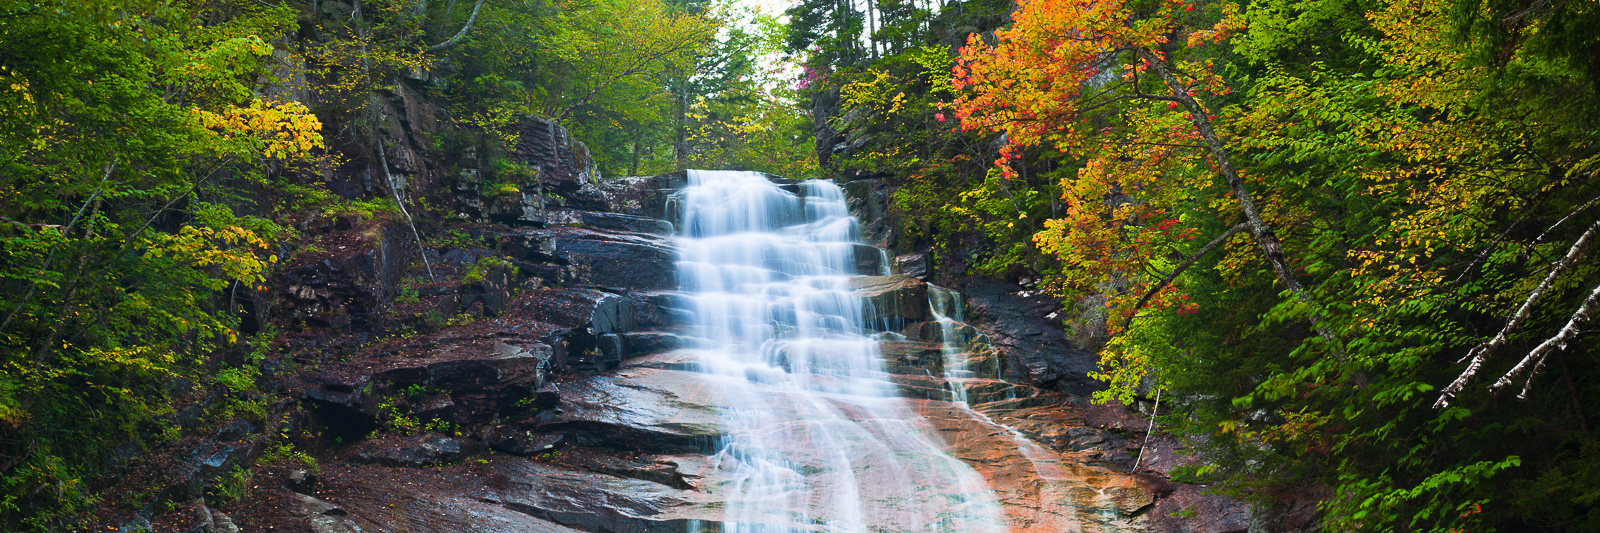 Autumn,Crawford Notch,Landscape,New England,New Hampshire,Panoramic,Ripley Falls,Waterfall,White Mountains,horizontal, photo